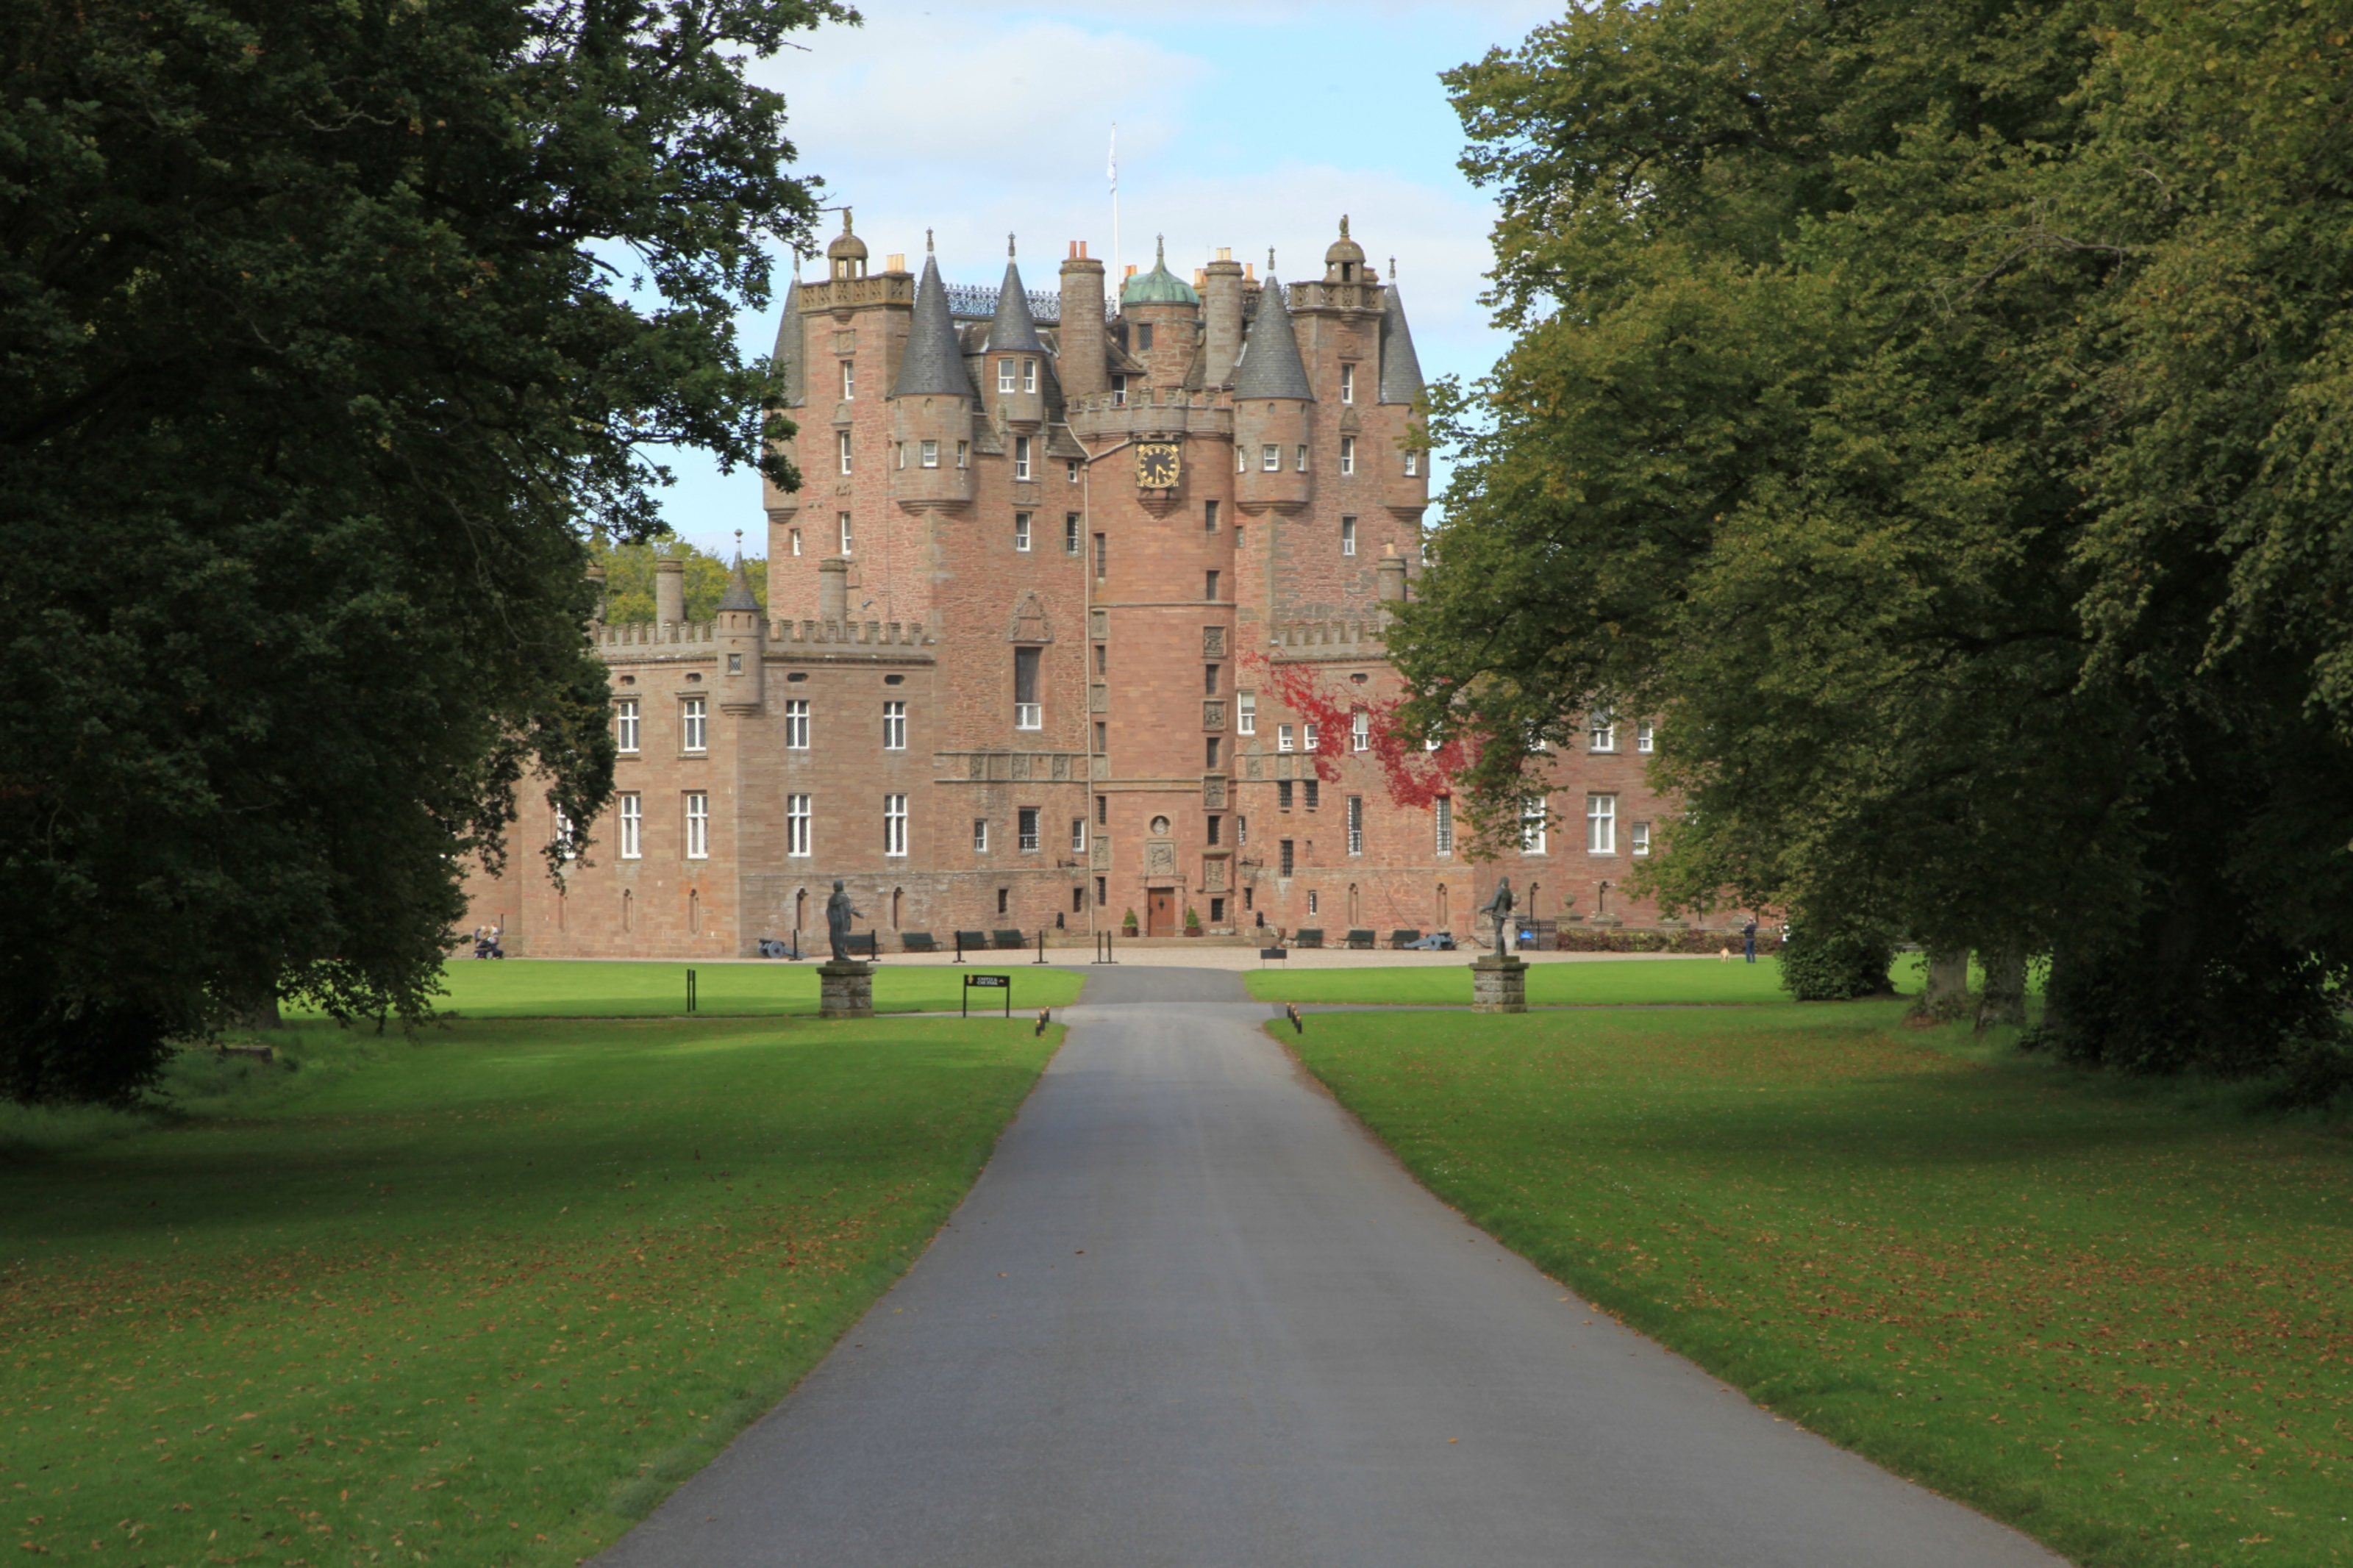 Glamis House is located within the Glamis Castle estate,.